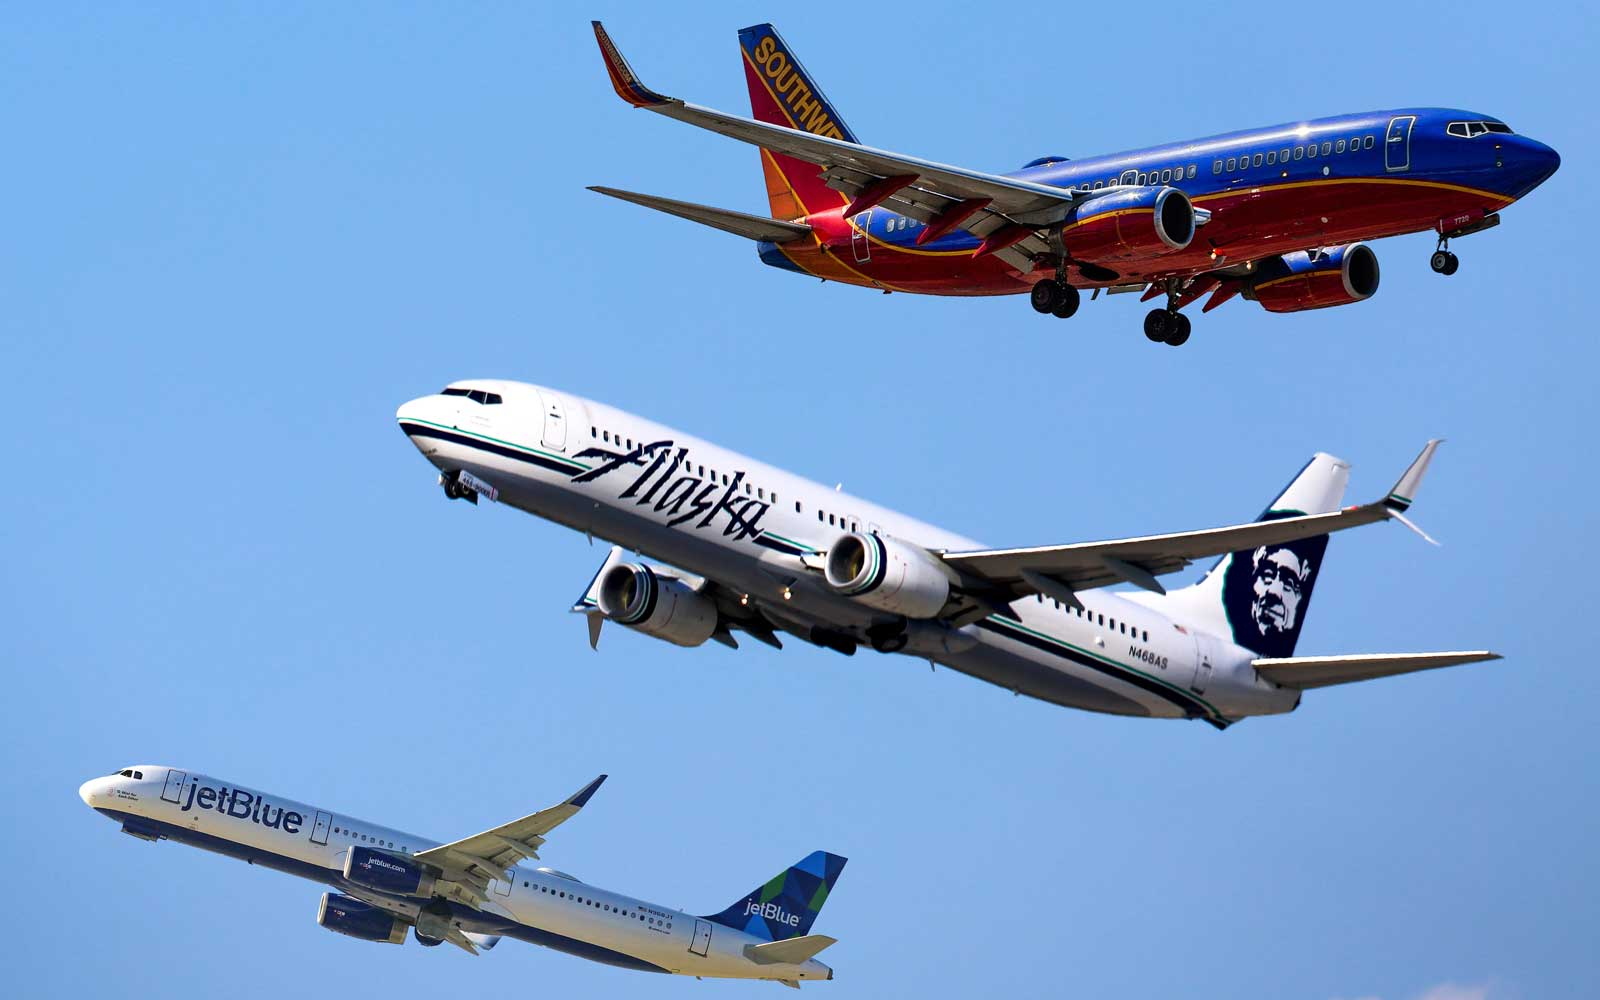 These Are the Best U.S. Airlines to Fly, According to Customer Satisfaction